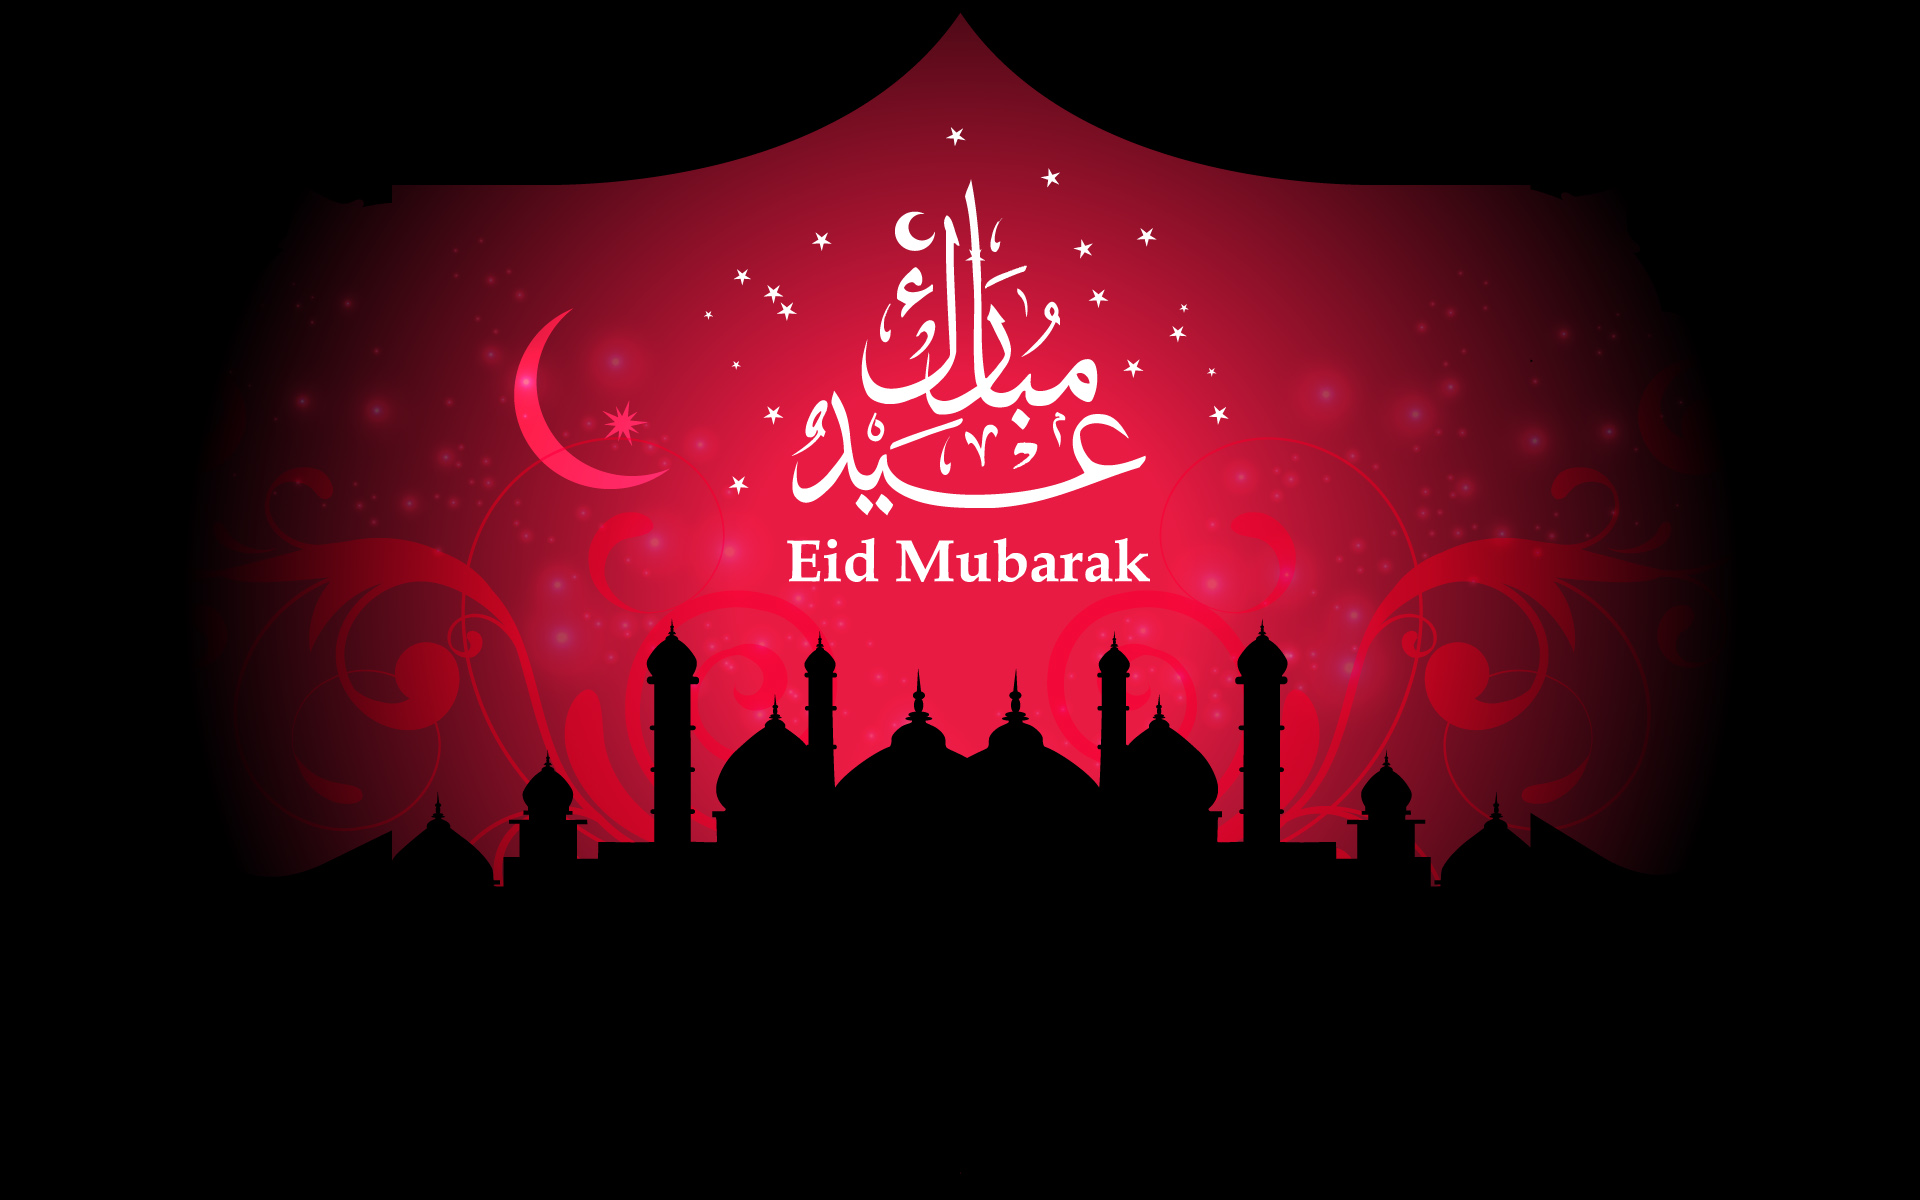 eid mubarak hd wallpapers pictures for family